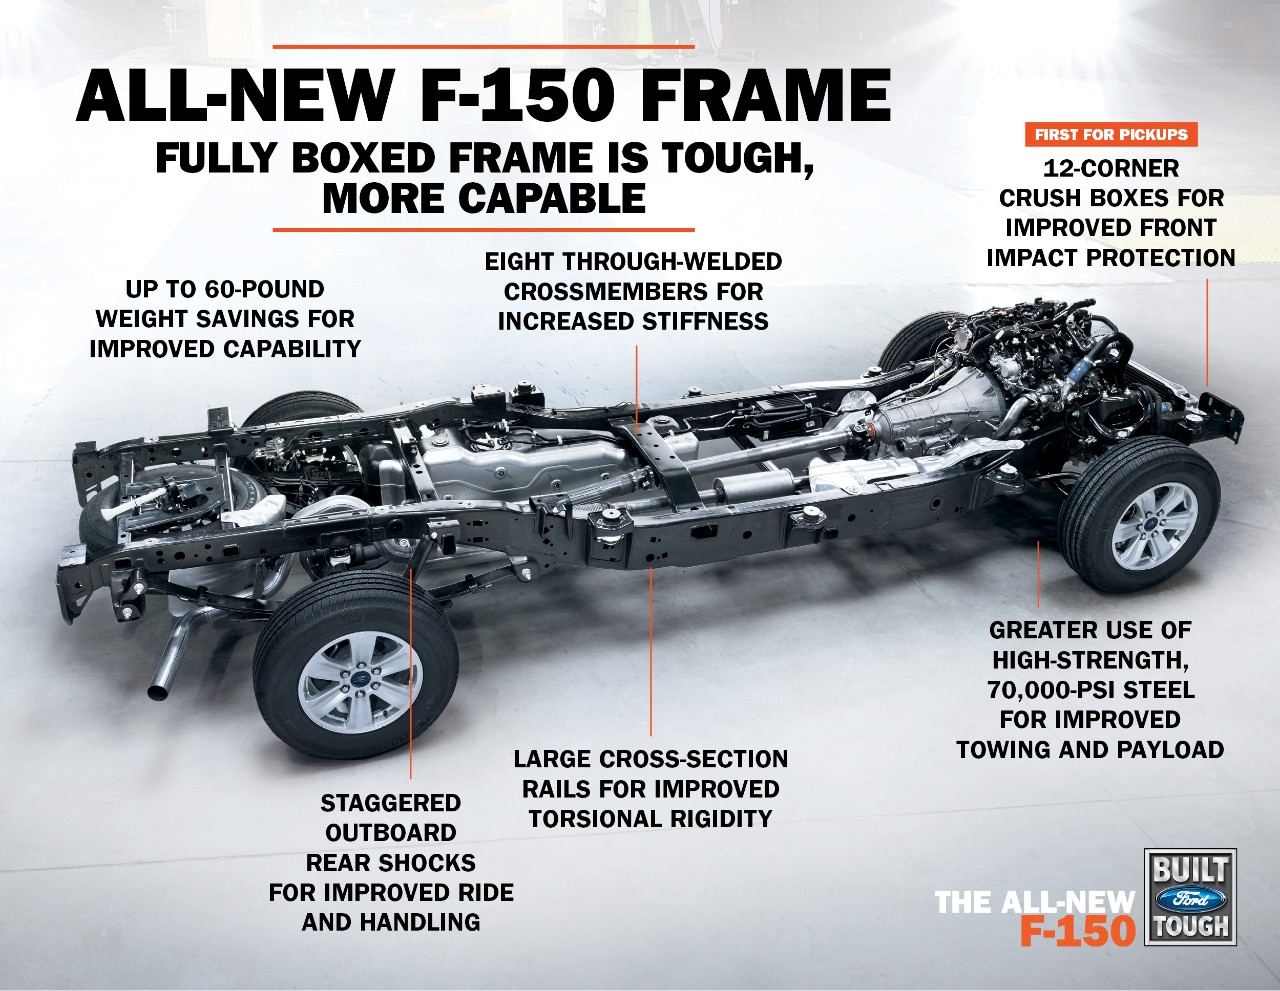 f 150 frame diagram 2015 ford f 150 frame creates better performance the news wheel  2015 ford f 150 frame creates better